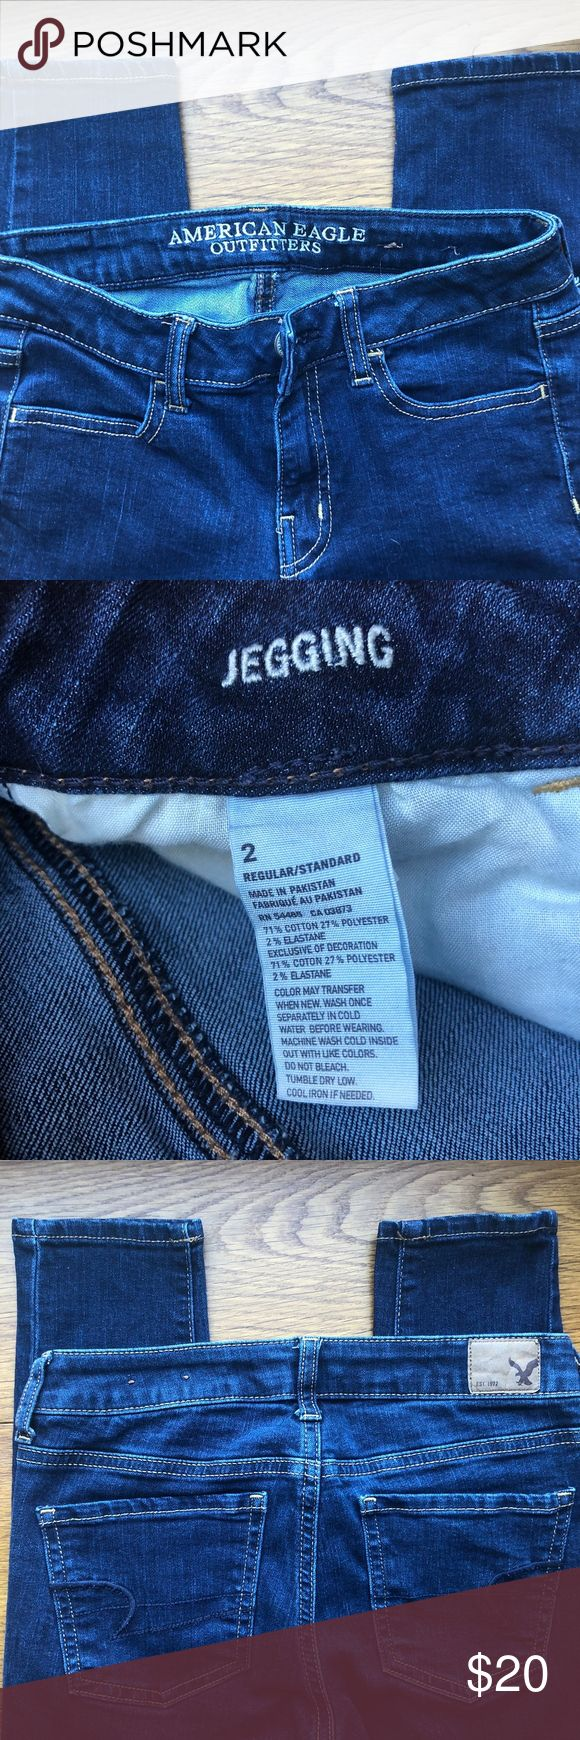 "American Eagle Women's Jeggings American Eagle Jeggings Dark Wash Great Condition Inseam 28"" Jeans"